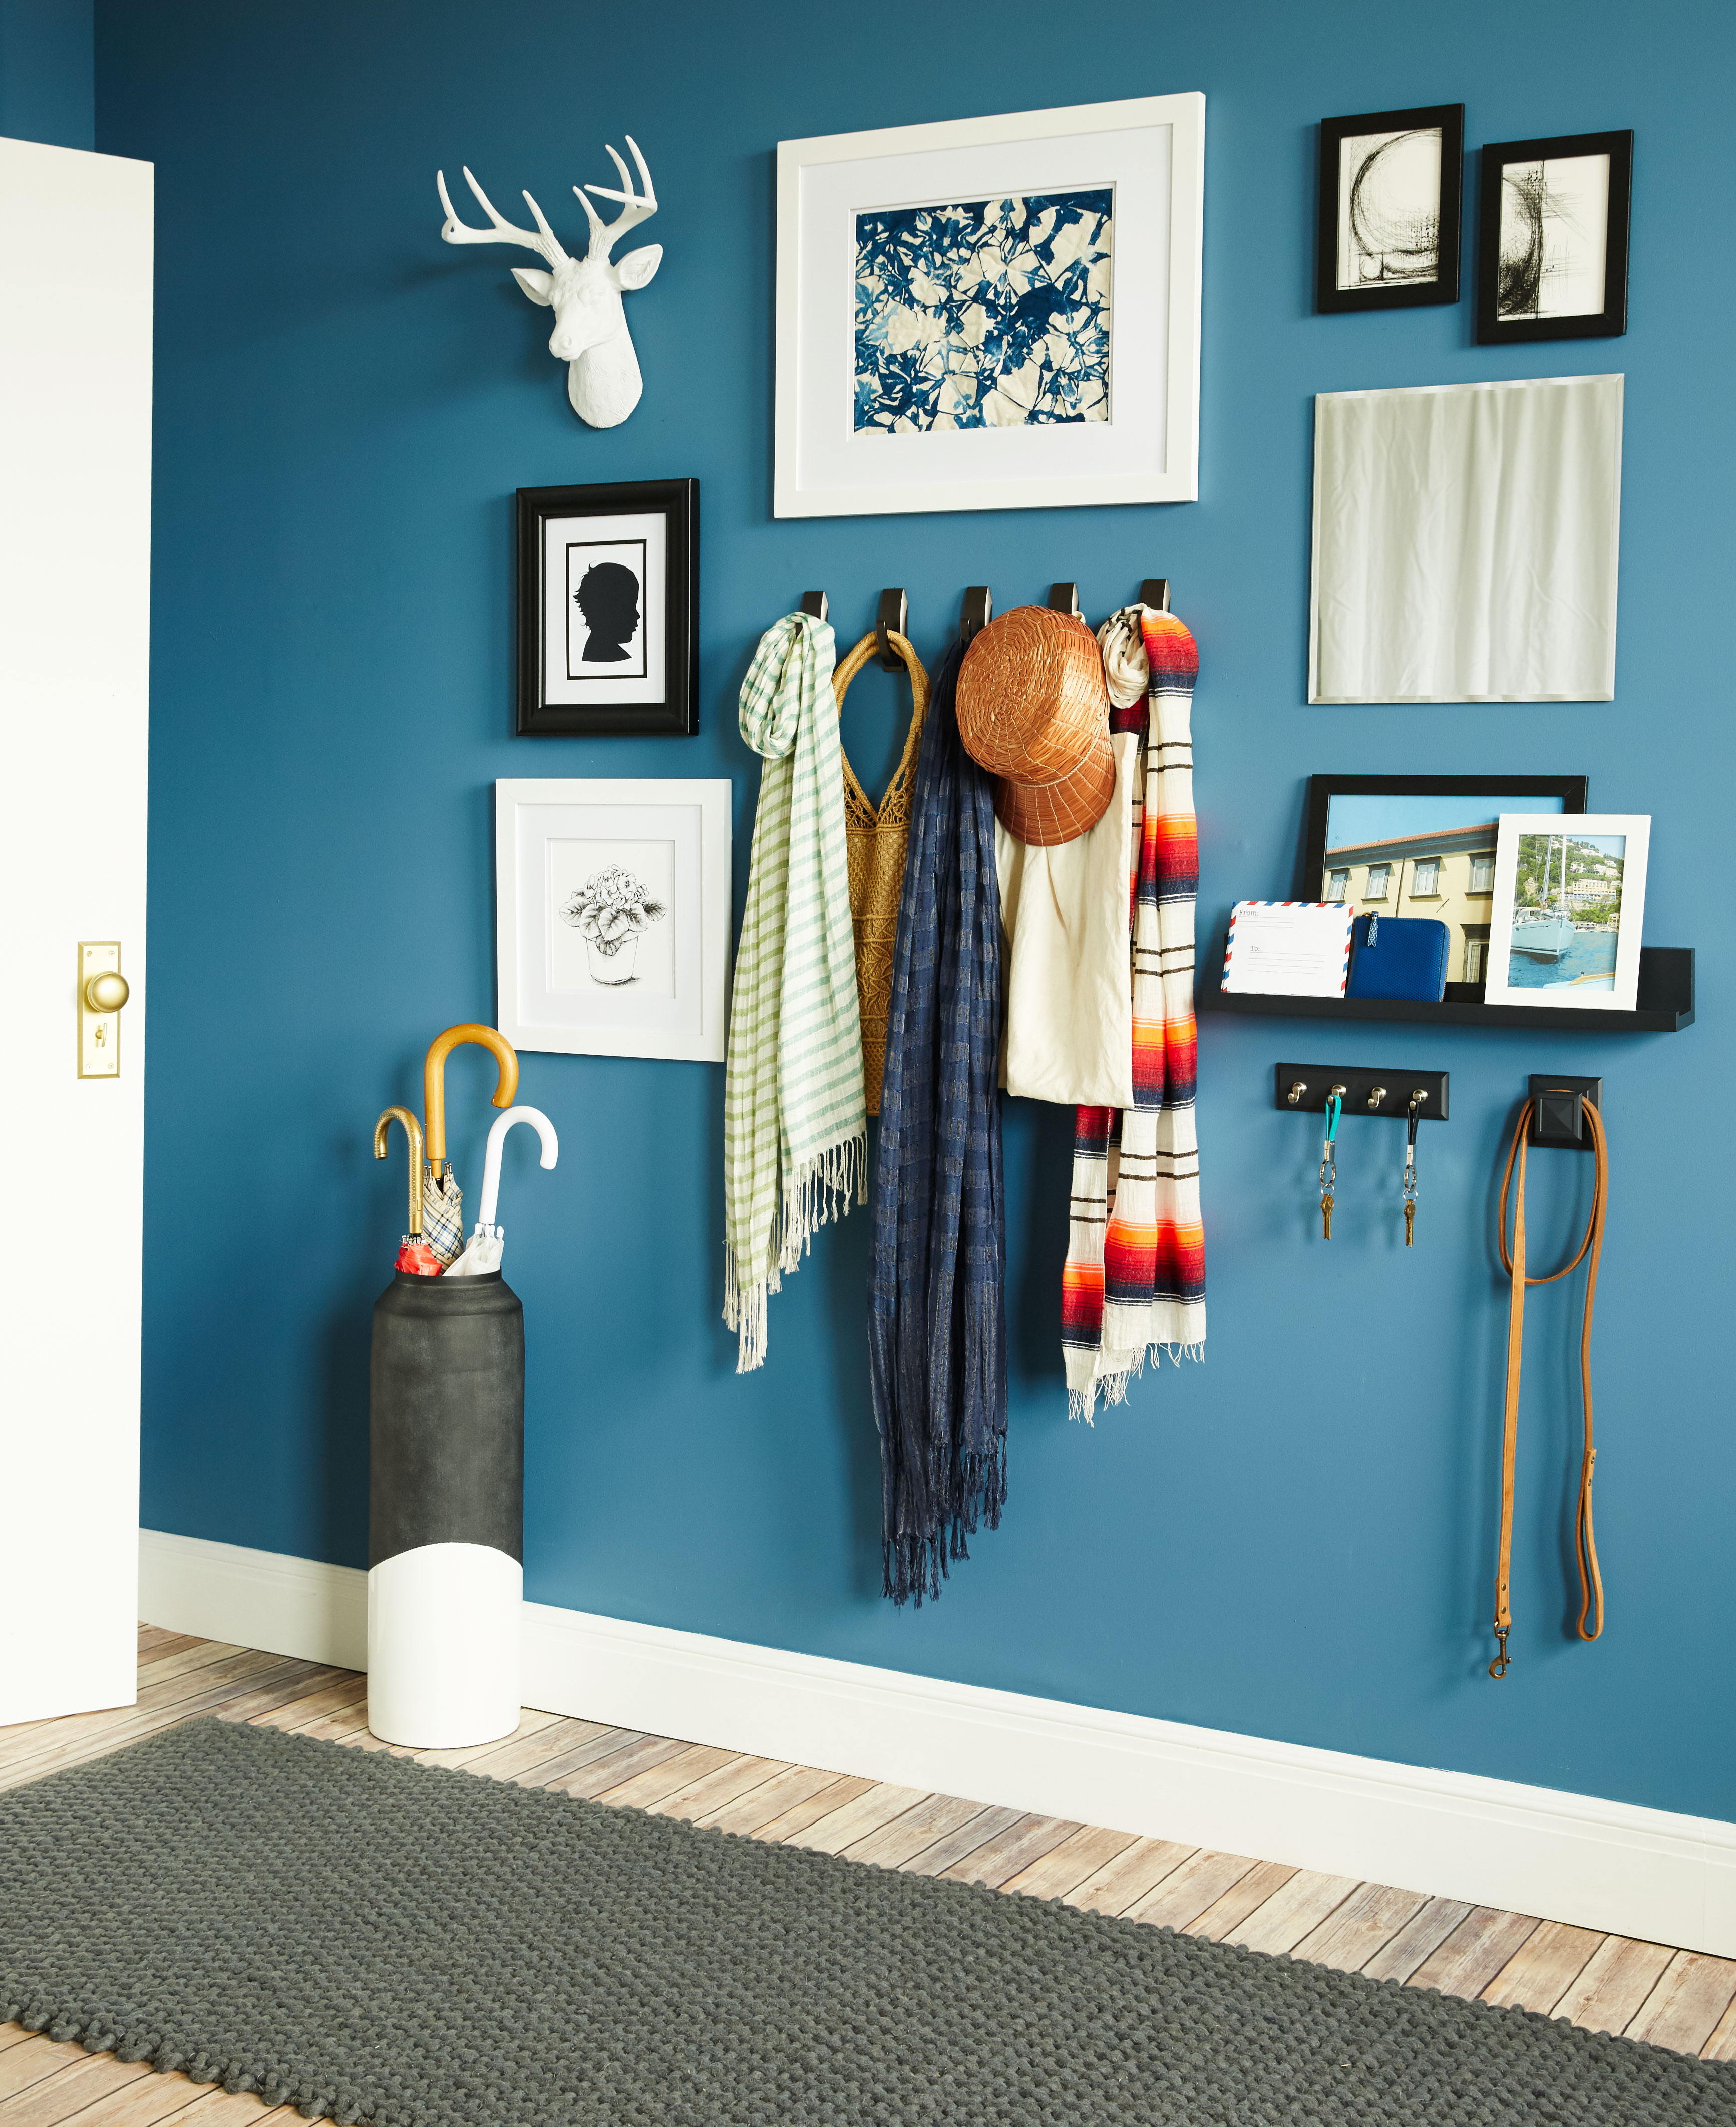 Inexpensive Ways to Update Your Home